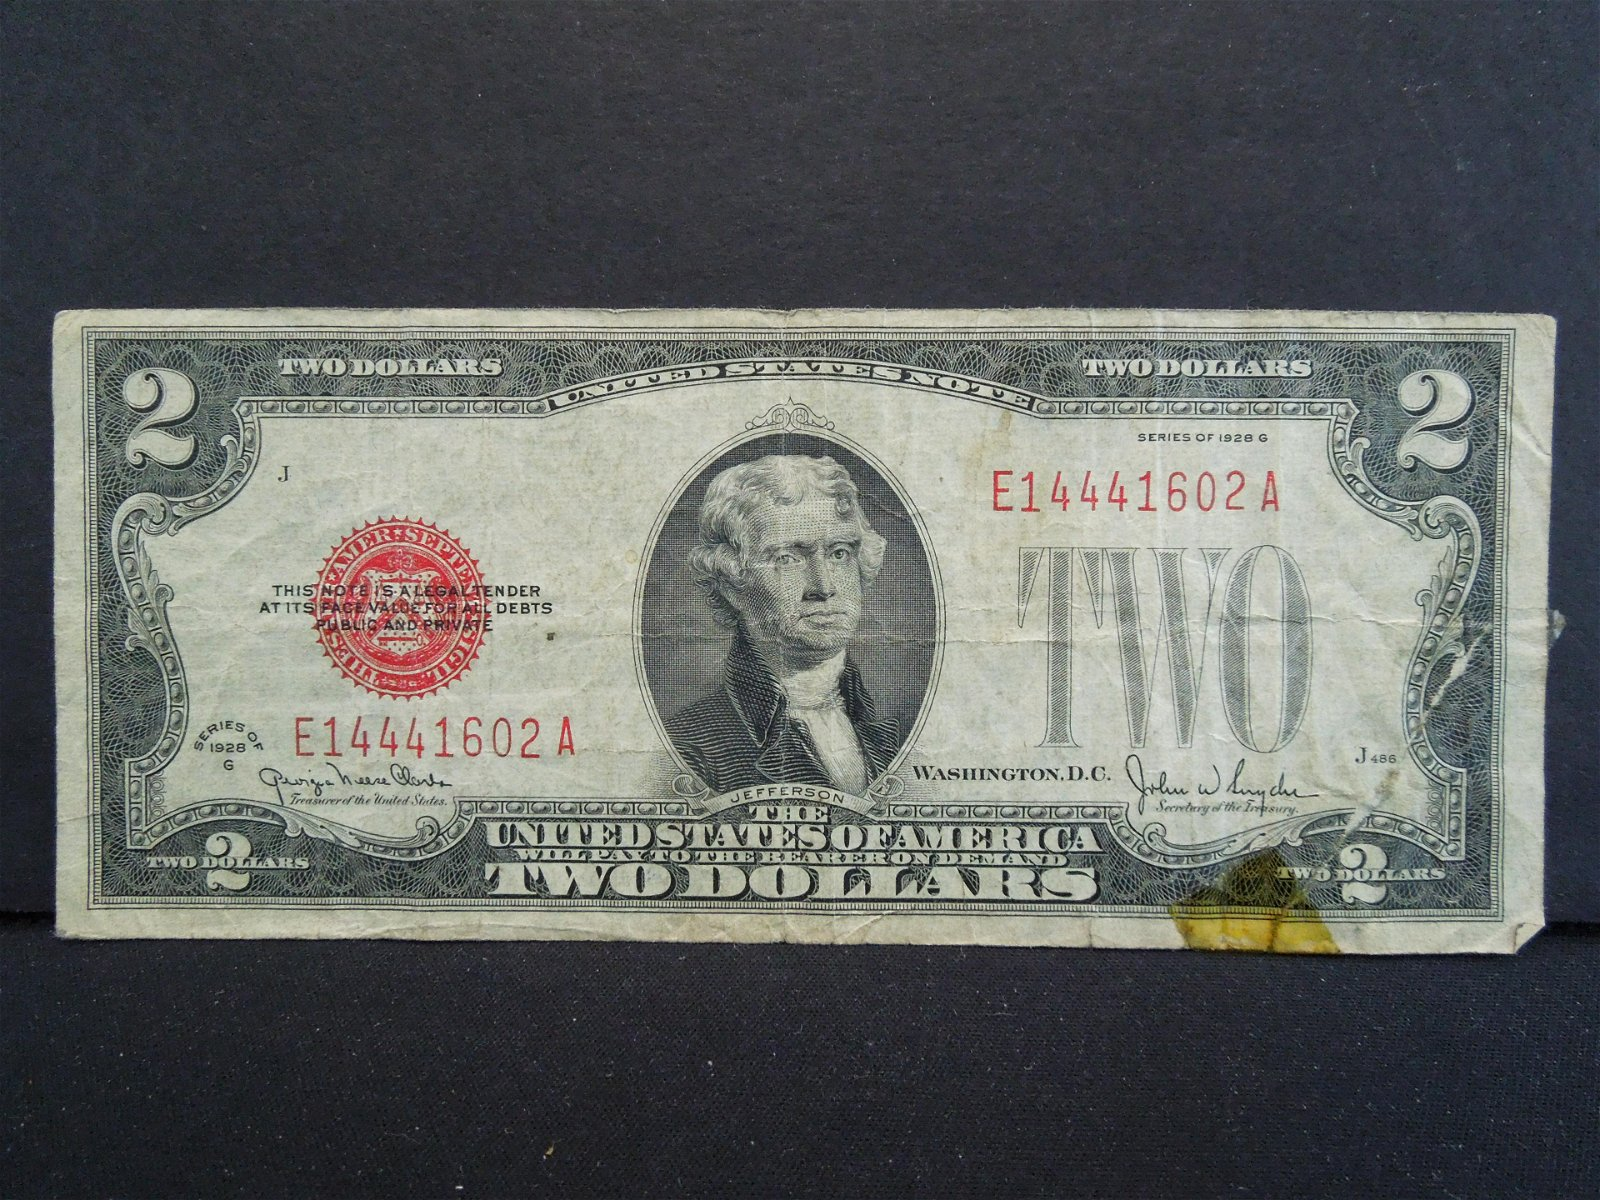 1928 $2 US Note - Red Seal